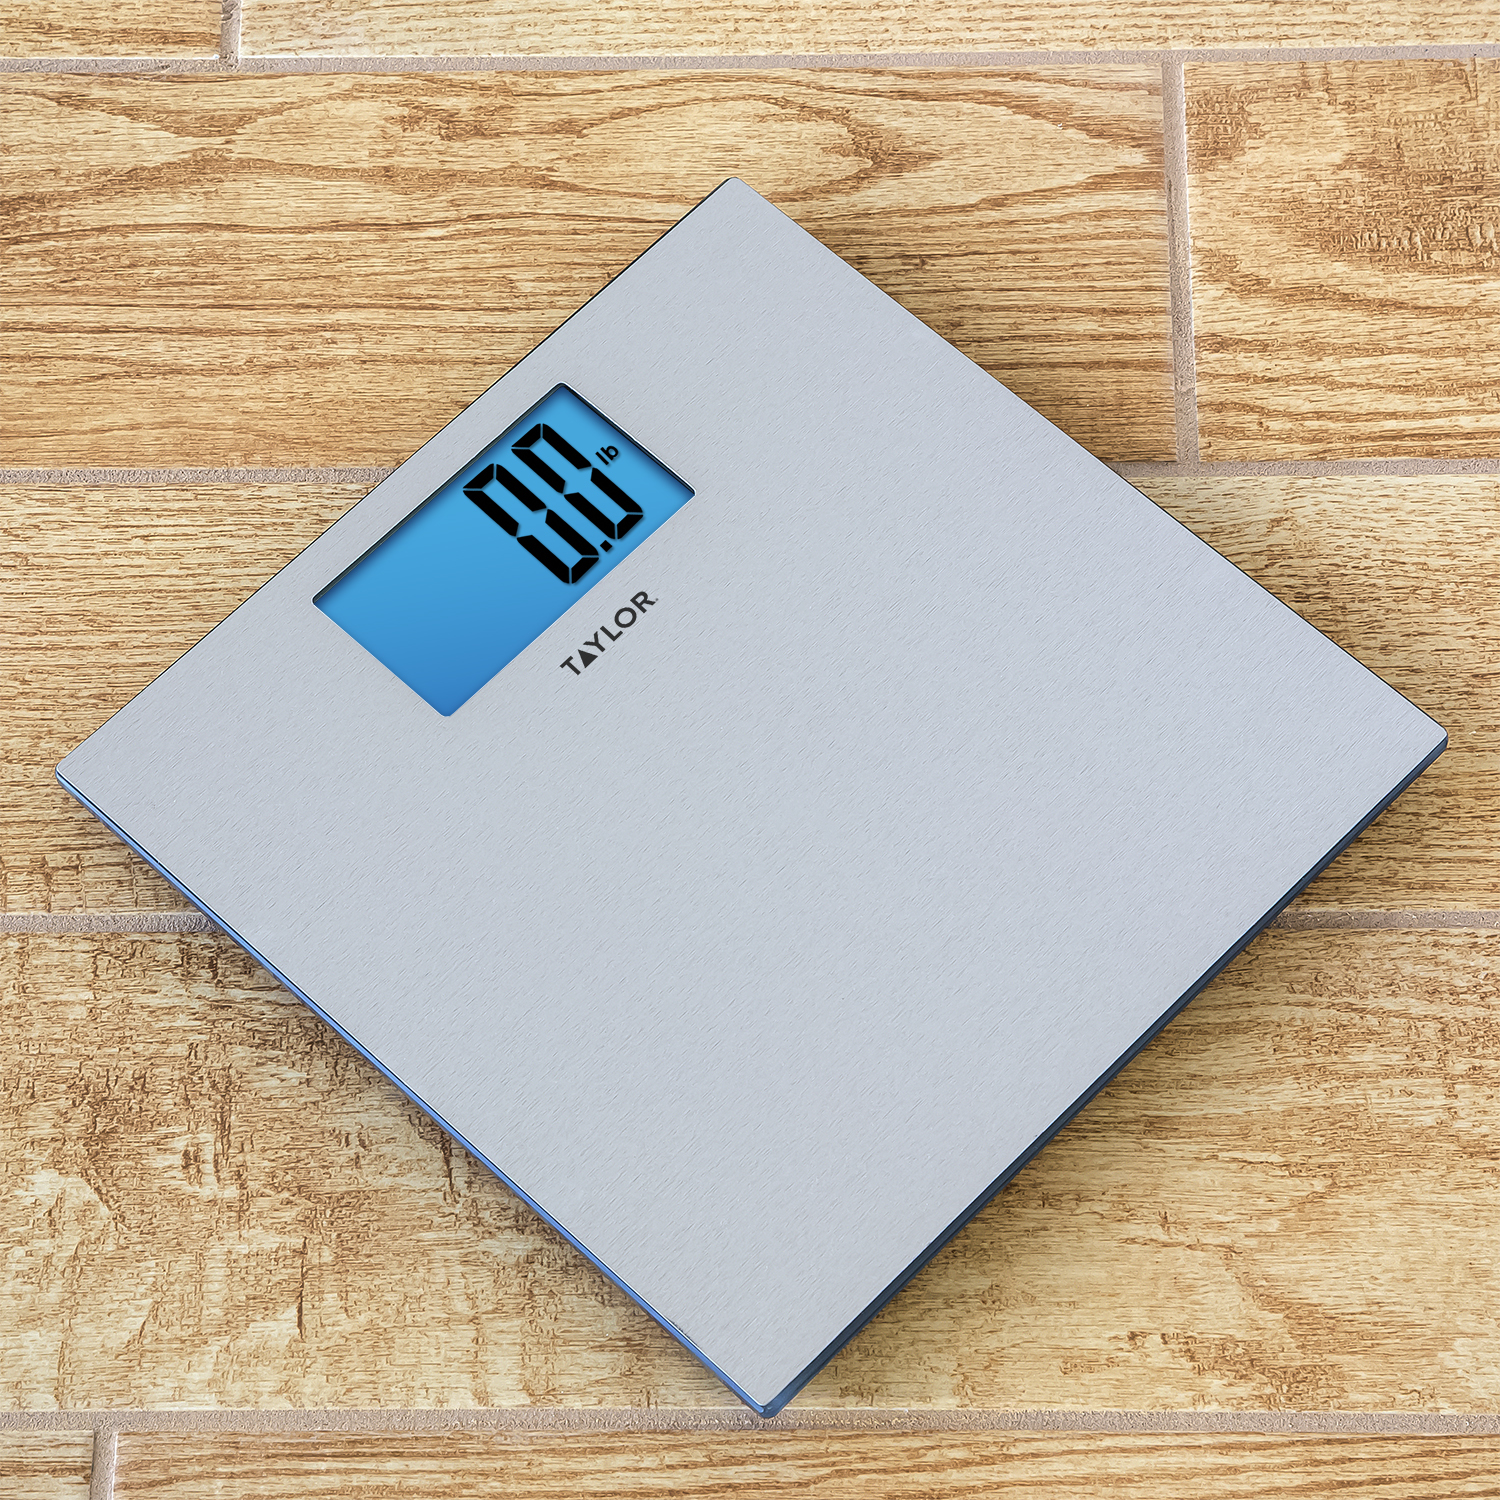 Taylor 7413 Textured Stainless Steel Digital Scale - Walmart.com